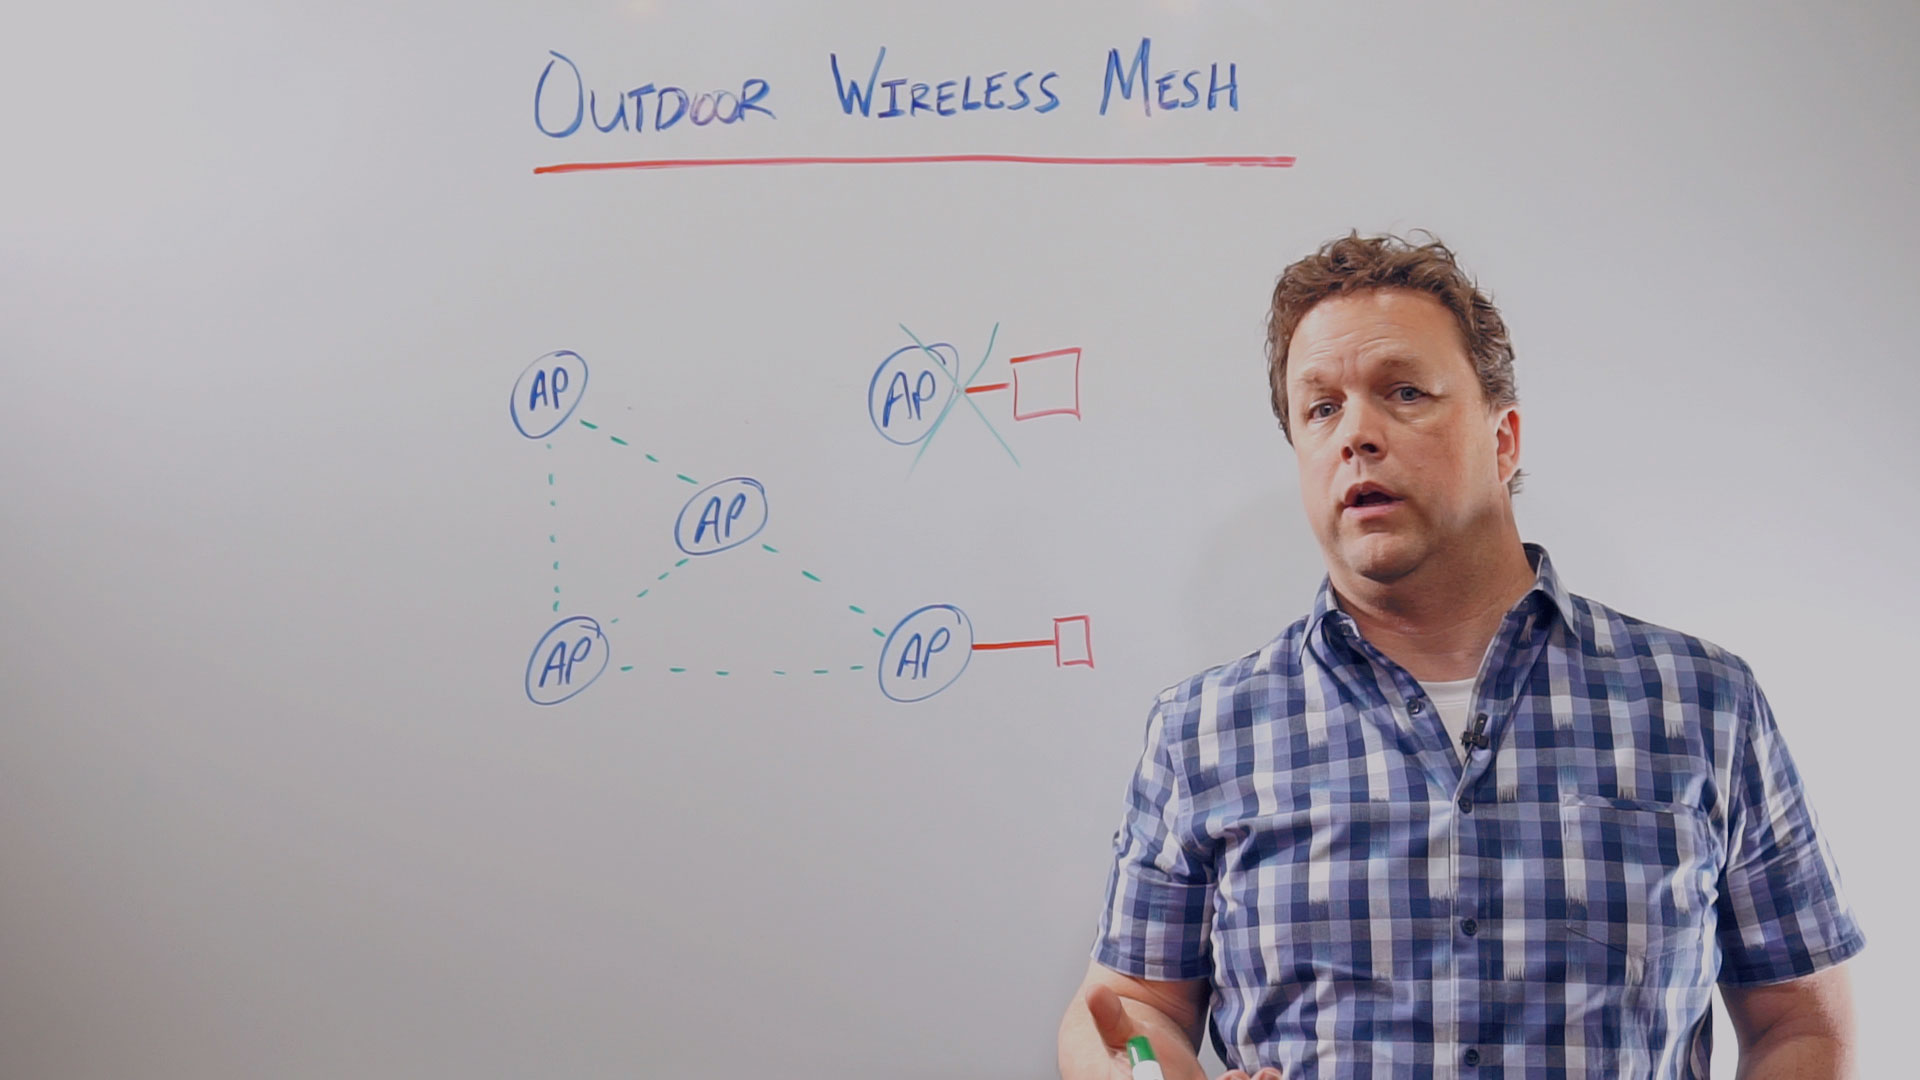 Outdoor Wireless Mesh Networks: What are They, and When Should They Be Used? [Whiteboard Wednesday]